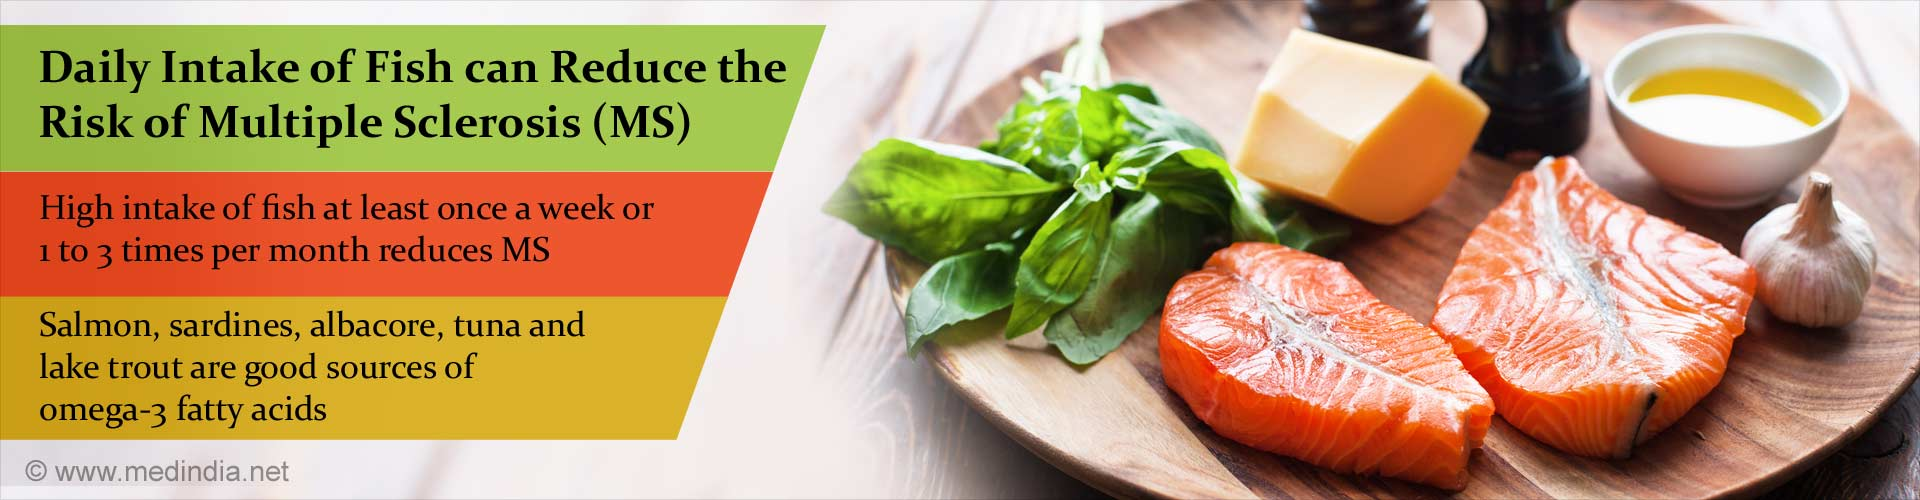 daily intake of fish can reduce the risk of multiple sclerosis (MS) - high intake of fish at least once a week or 1 to 3 times per month reduces MS - salmon, sardines, albacore, tune and lake troute are good sources of omega-3 fatty acids